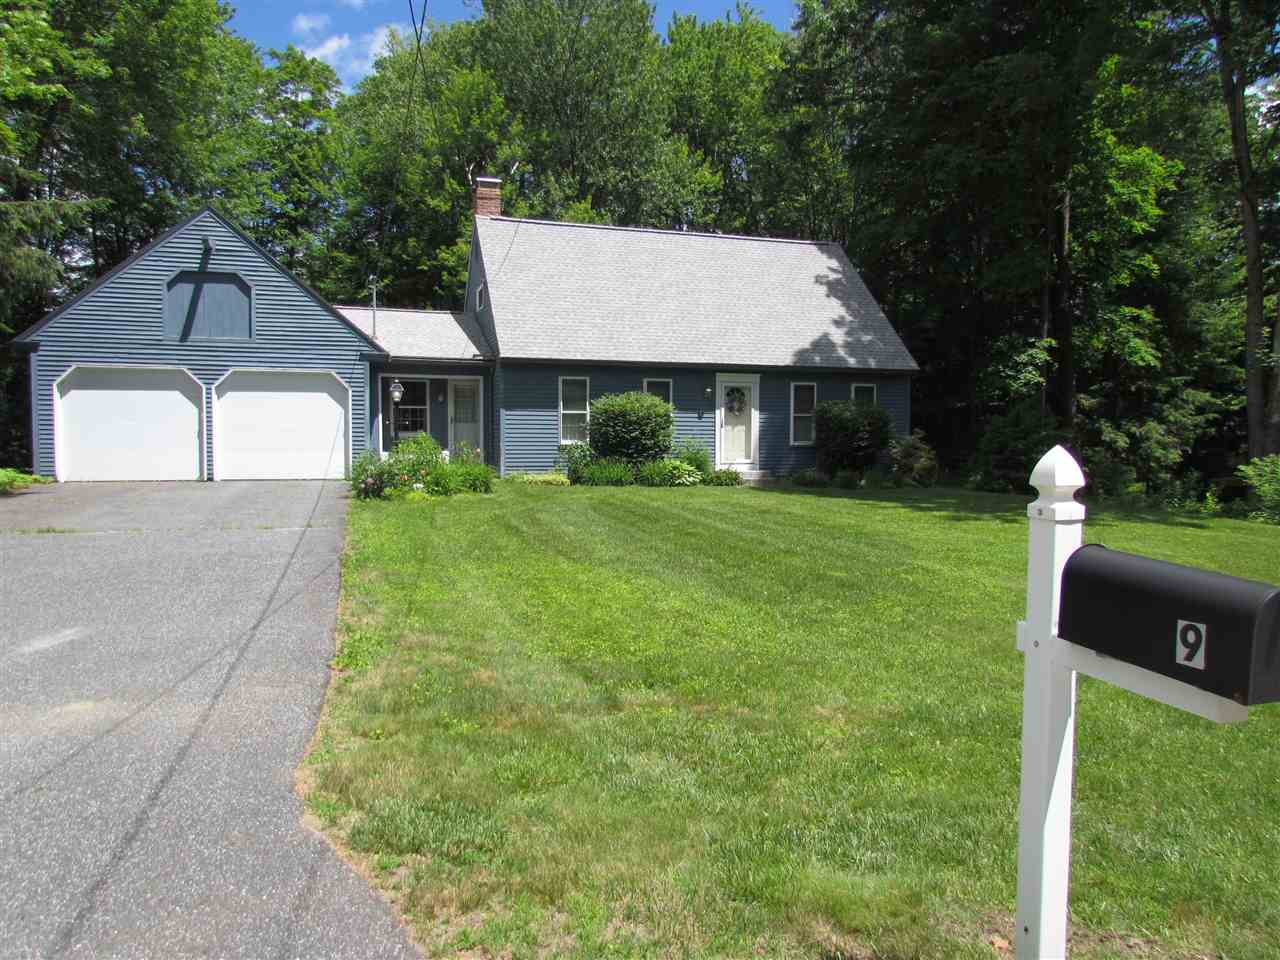 image of Claremont NH Home | sq.ft. 3498